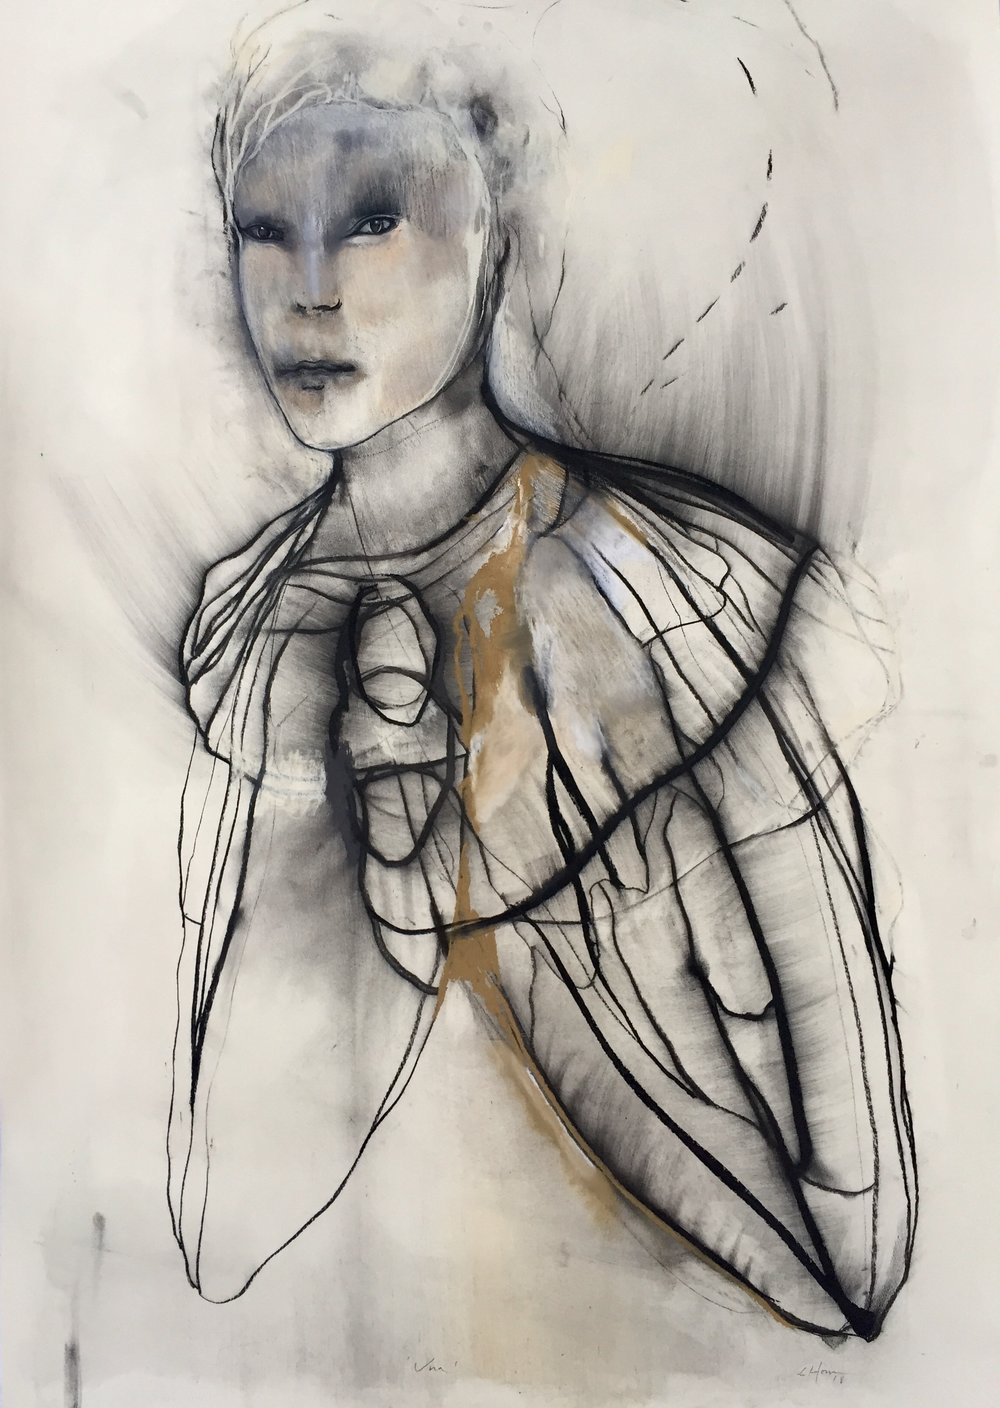 Una ,146 x 107 cm. Charcoal and pastel on paper, 2018